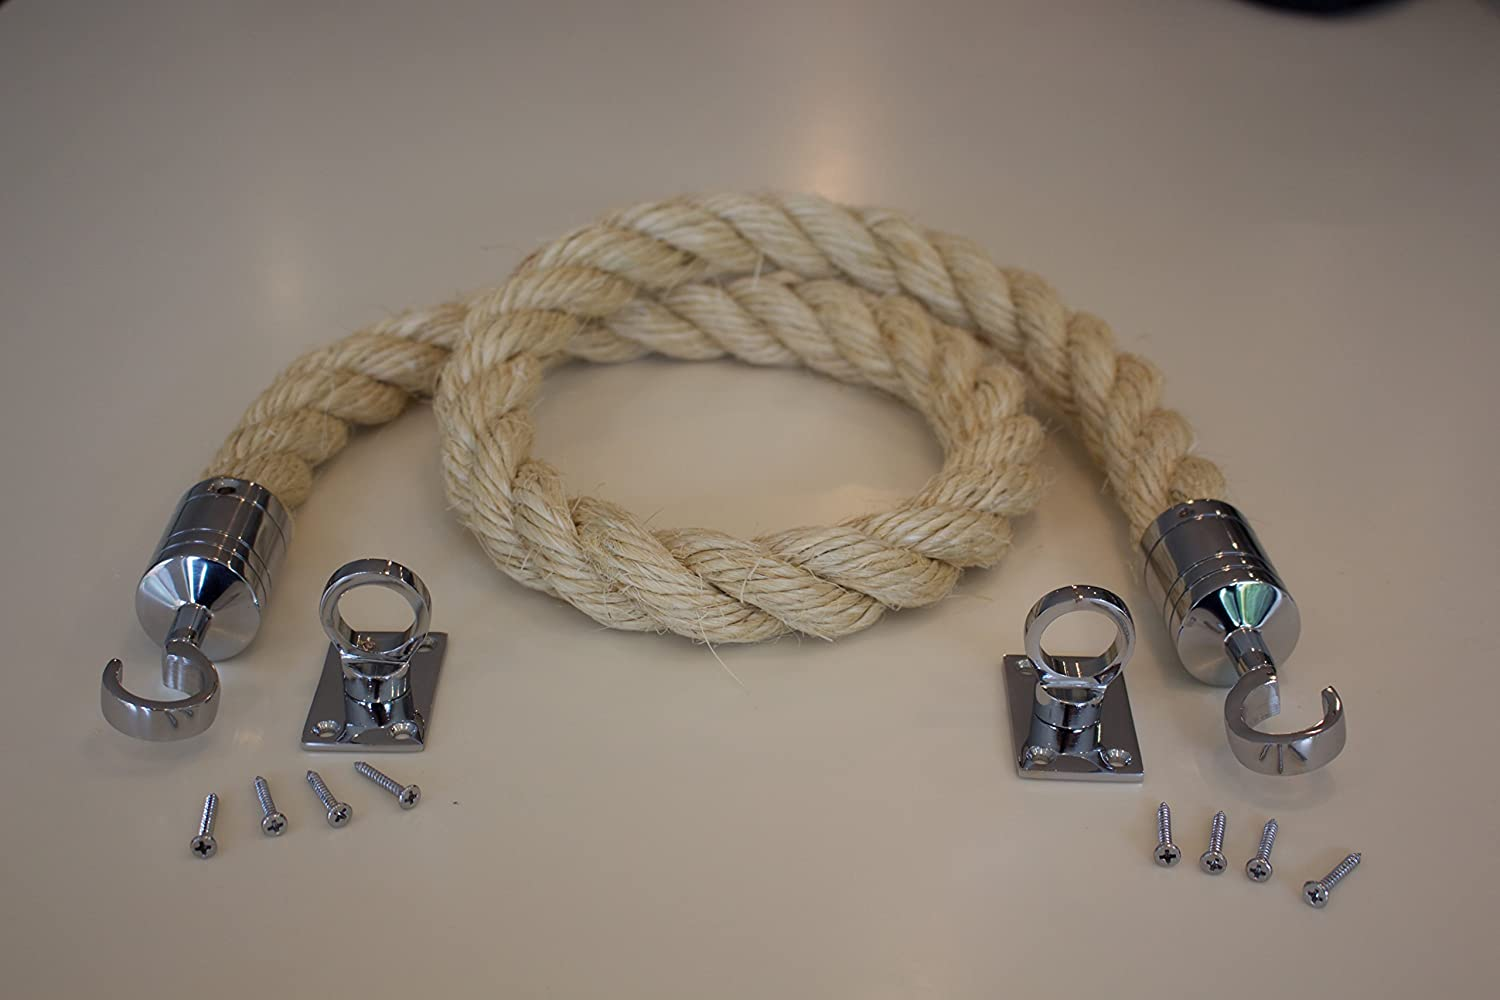 3 Mtr Decking Rope System 2 End Hooks & Fixing Plates Unbranded